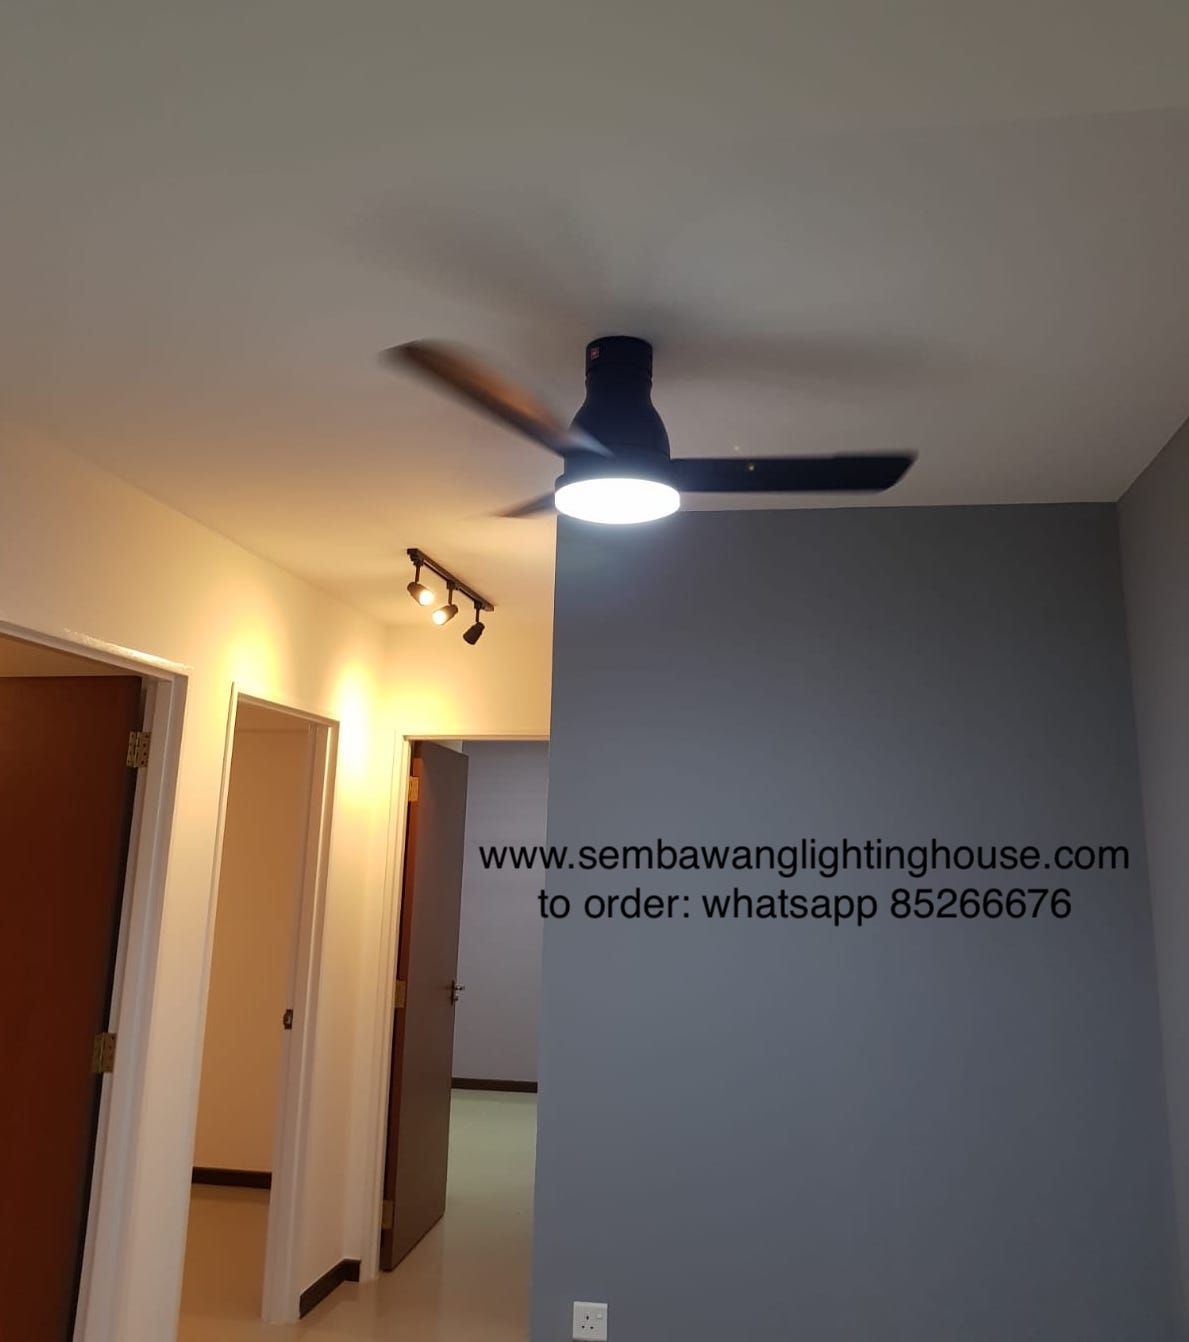 KDK U48FP Black Ceiling Fan Sample at Dining Room | Sembawang Lighting House